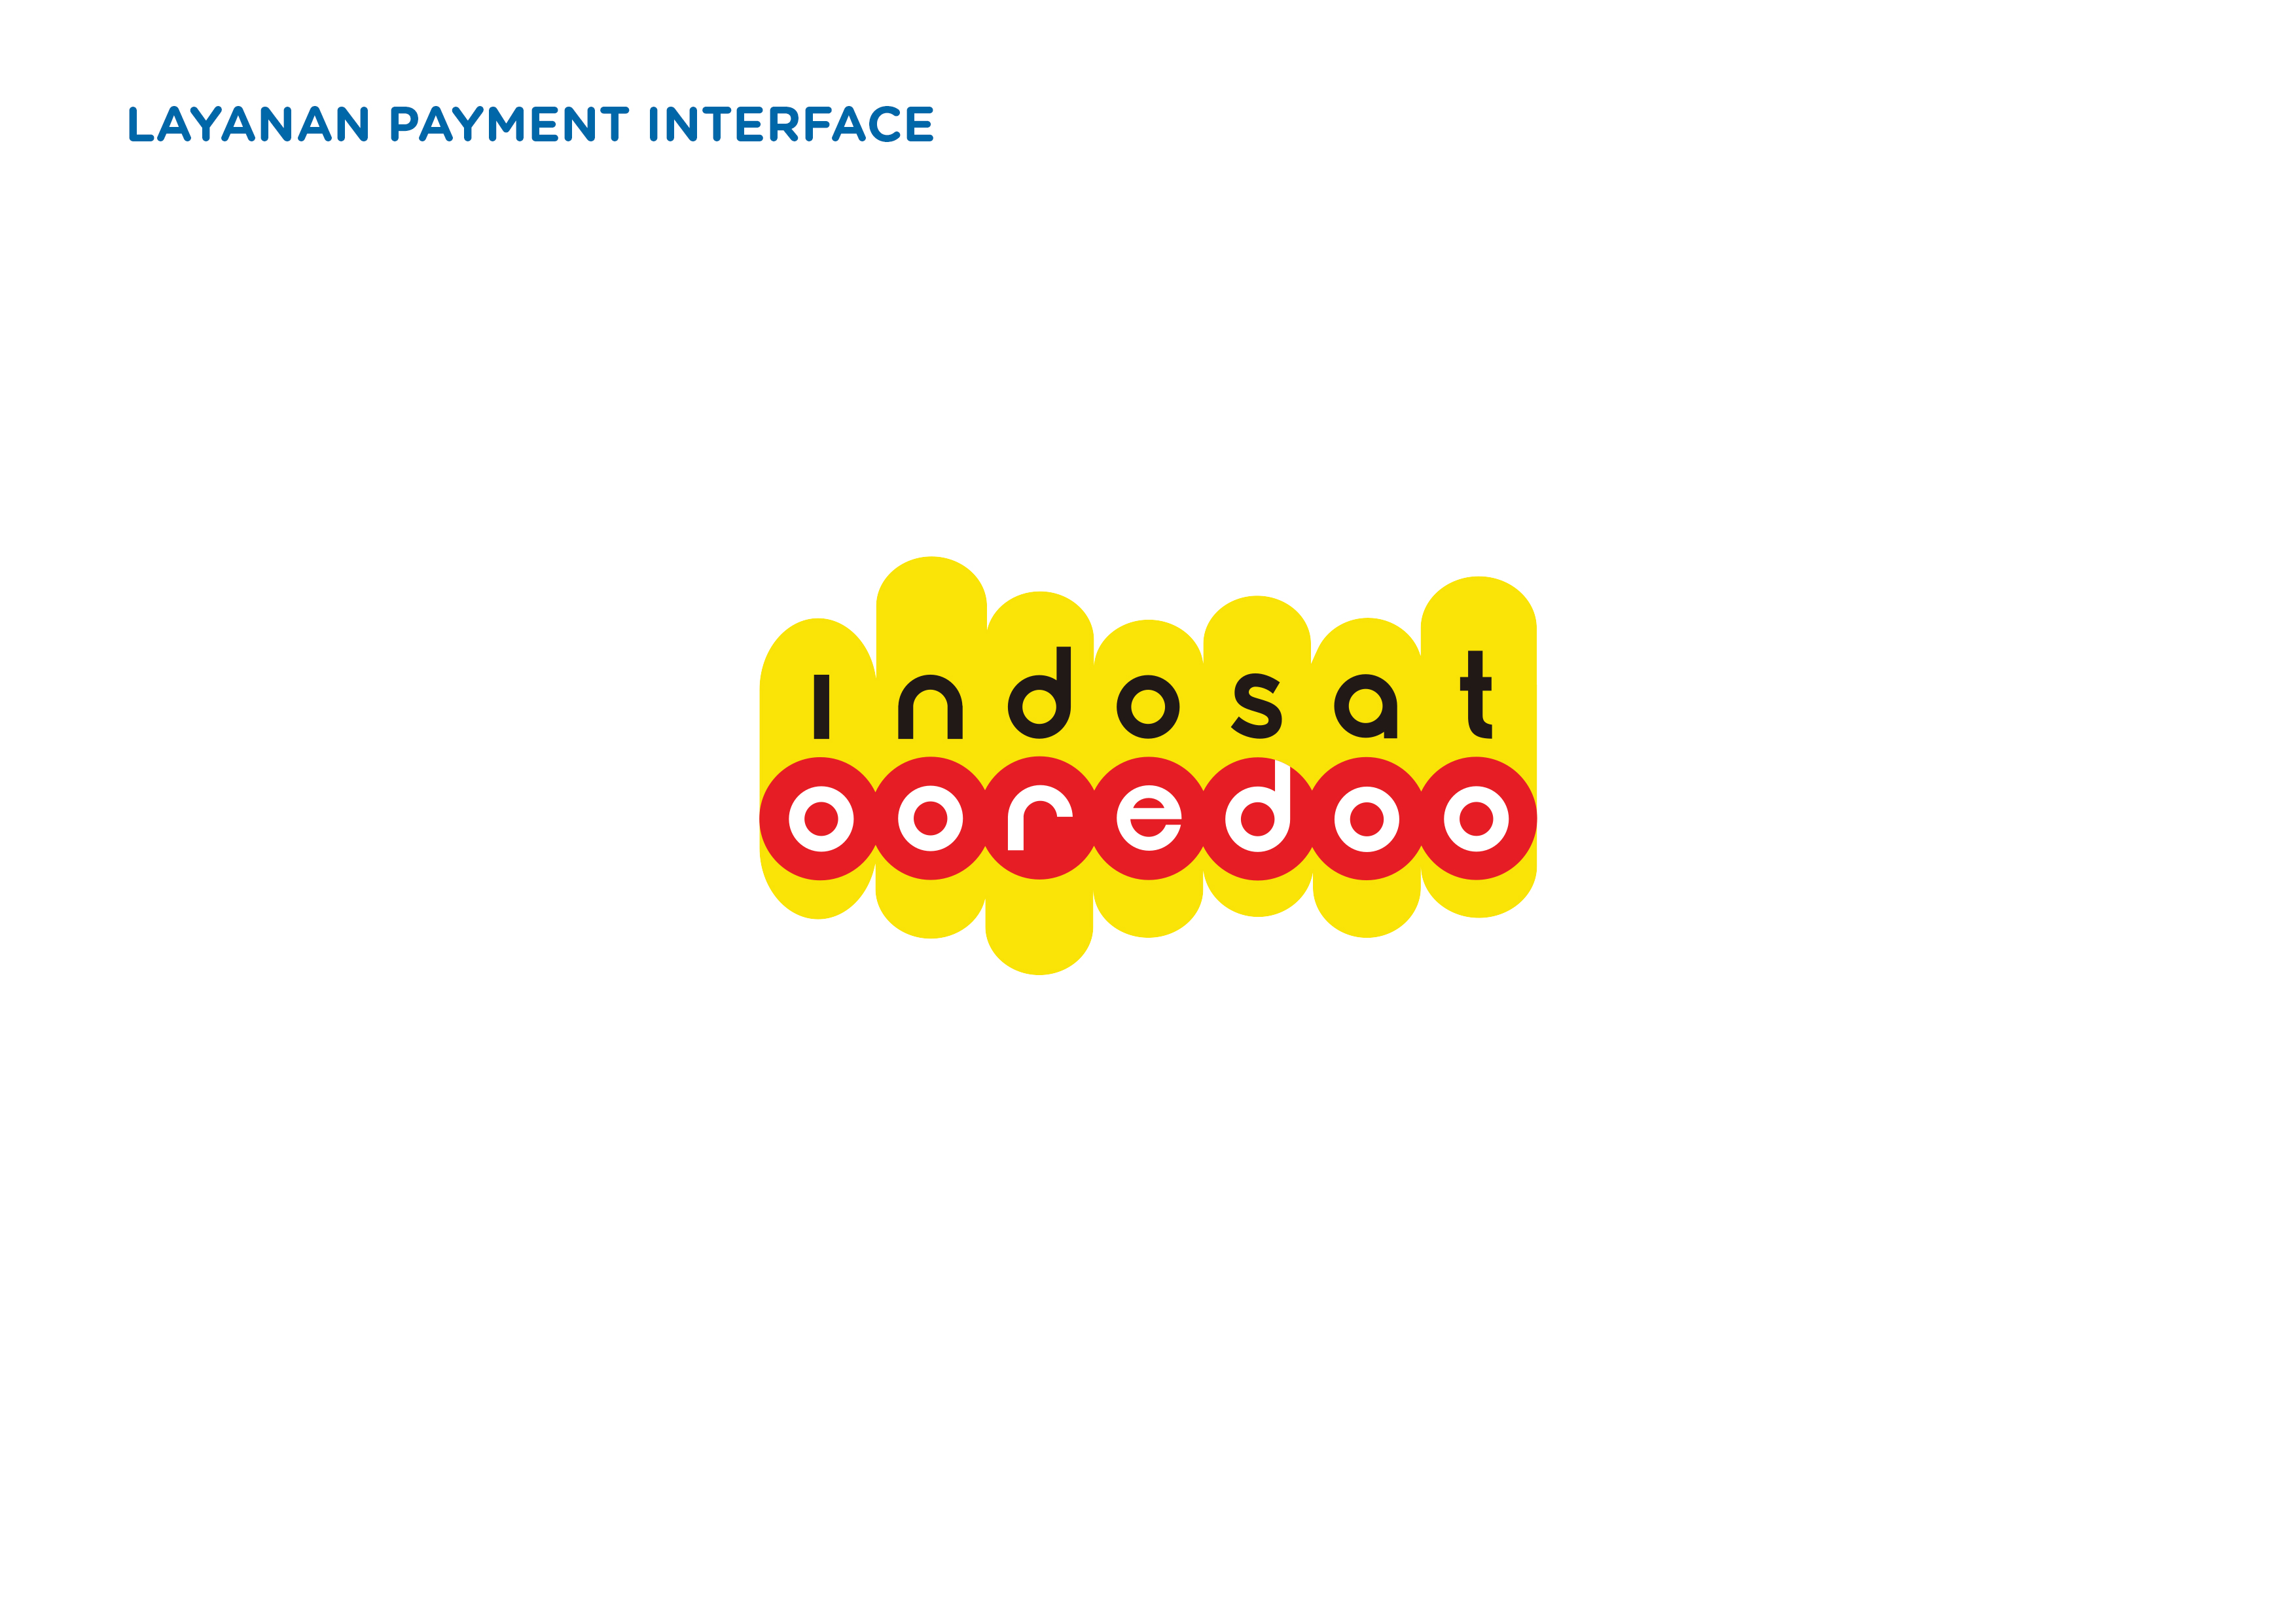 ACB Payment Interface